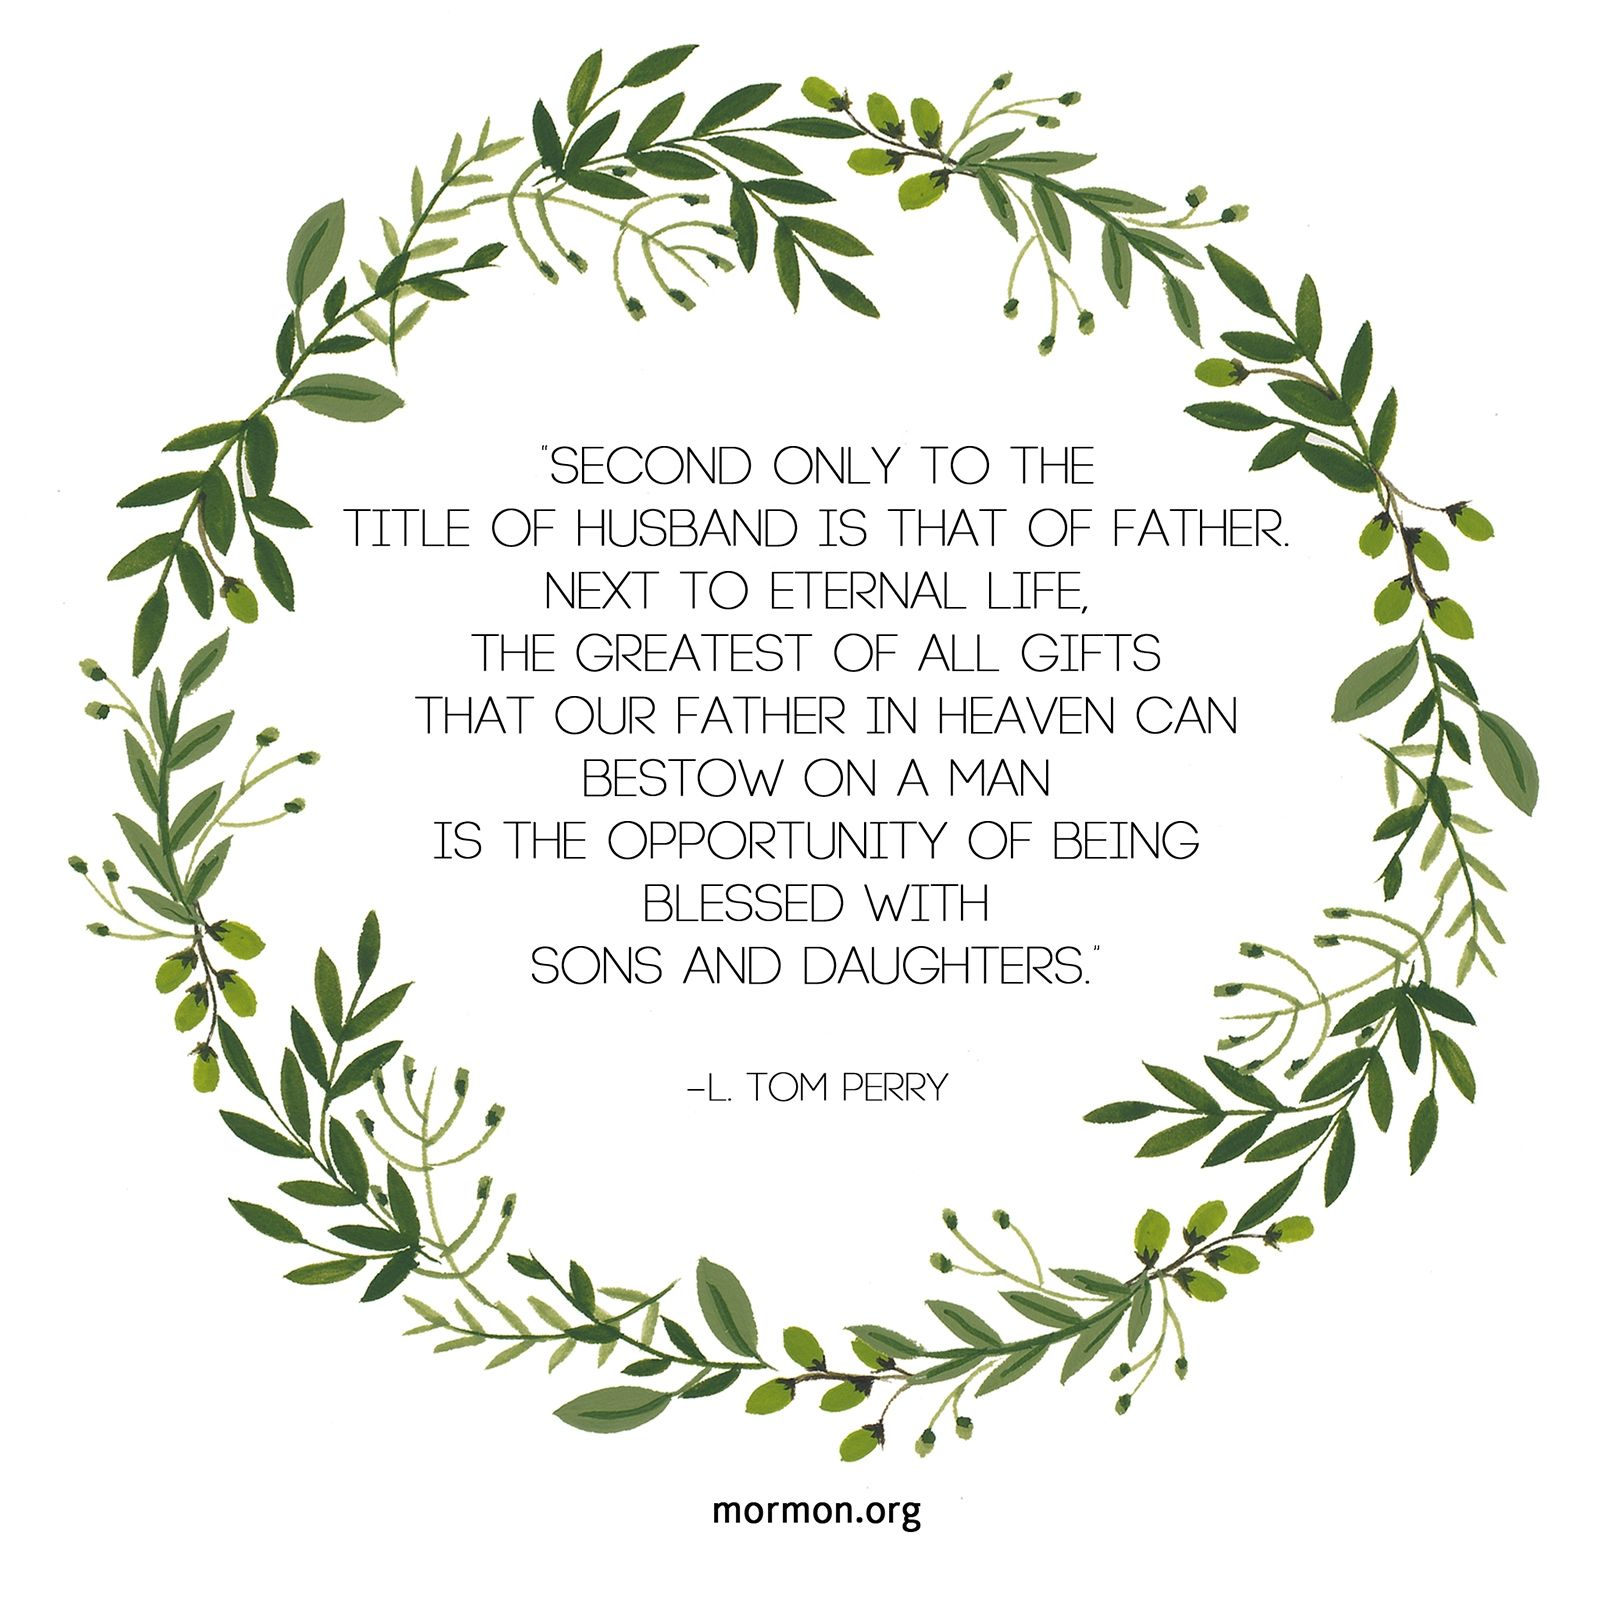 """""""Second only to the title of husband is that of father. Next to eternal life, the greatest of all gifts that our Father in heaven can bestow on a man is the opportunity of being blessed with sons and daughters.""""—Elder L. Tom Perry, """"Father—Your Role, Your Responsibility"""""""